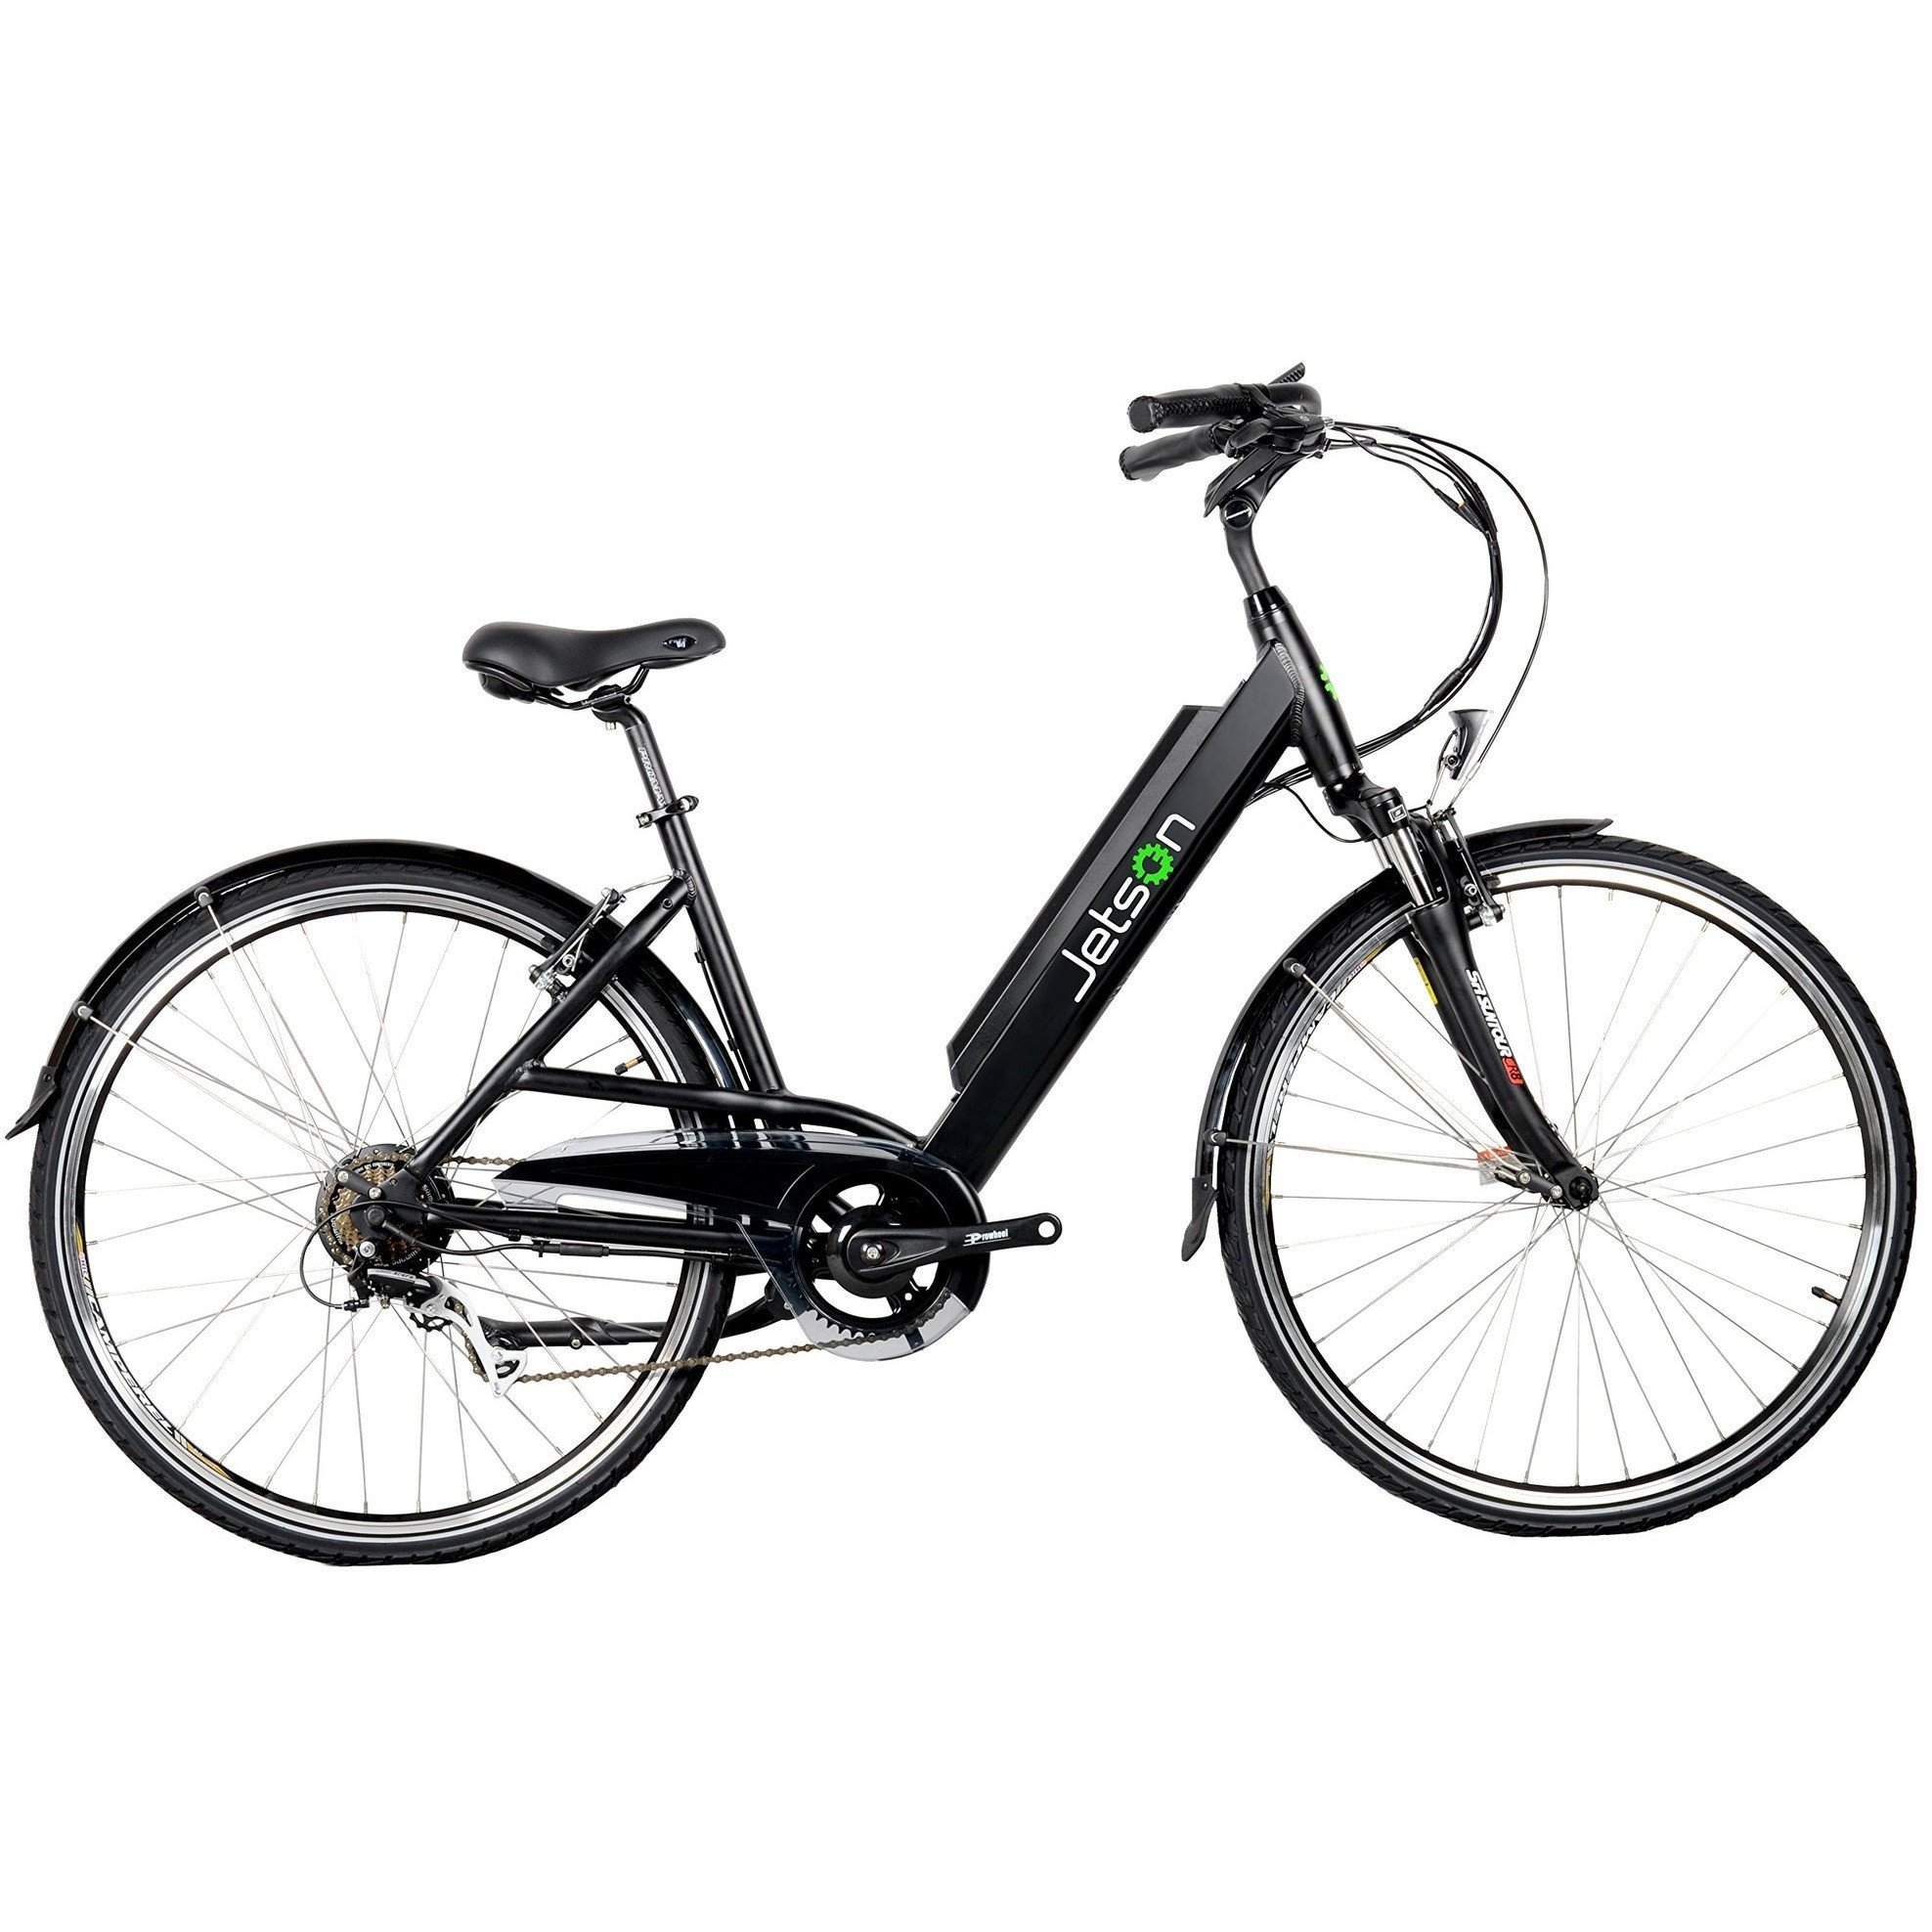 Jetson Rose 36v Electric City Bike Best Electric Bikes Bicycle Bike